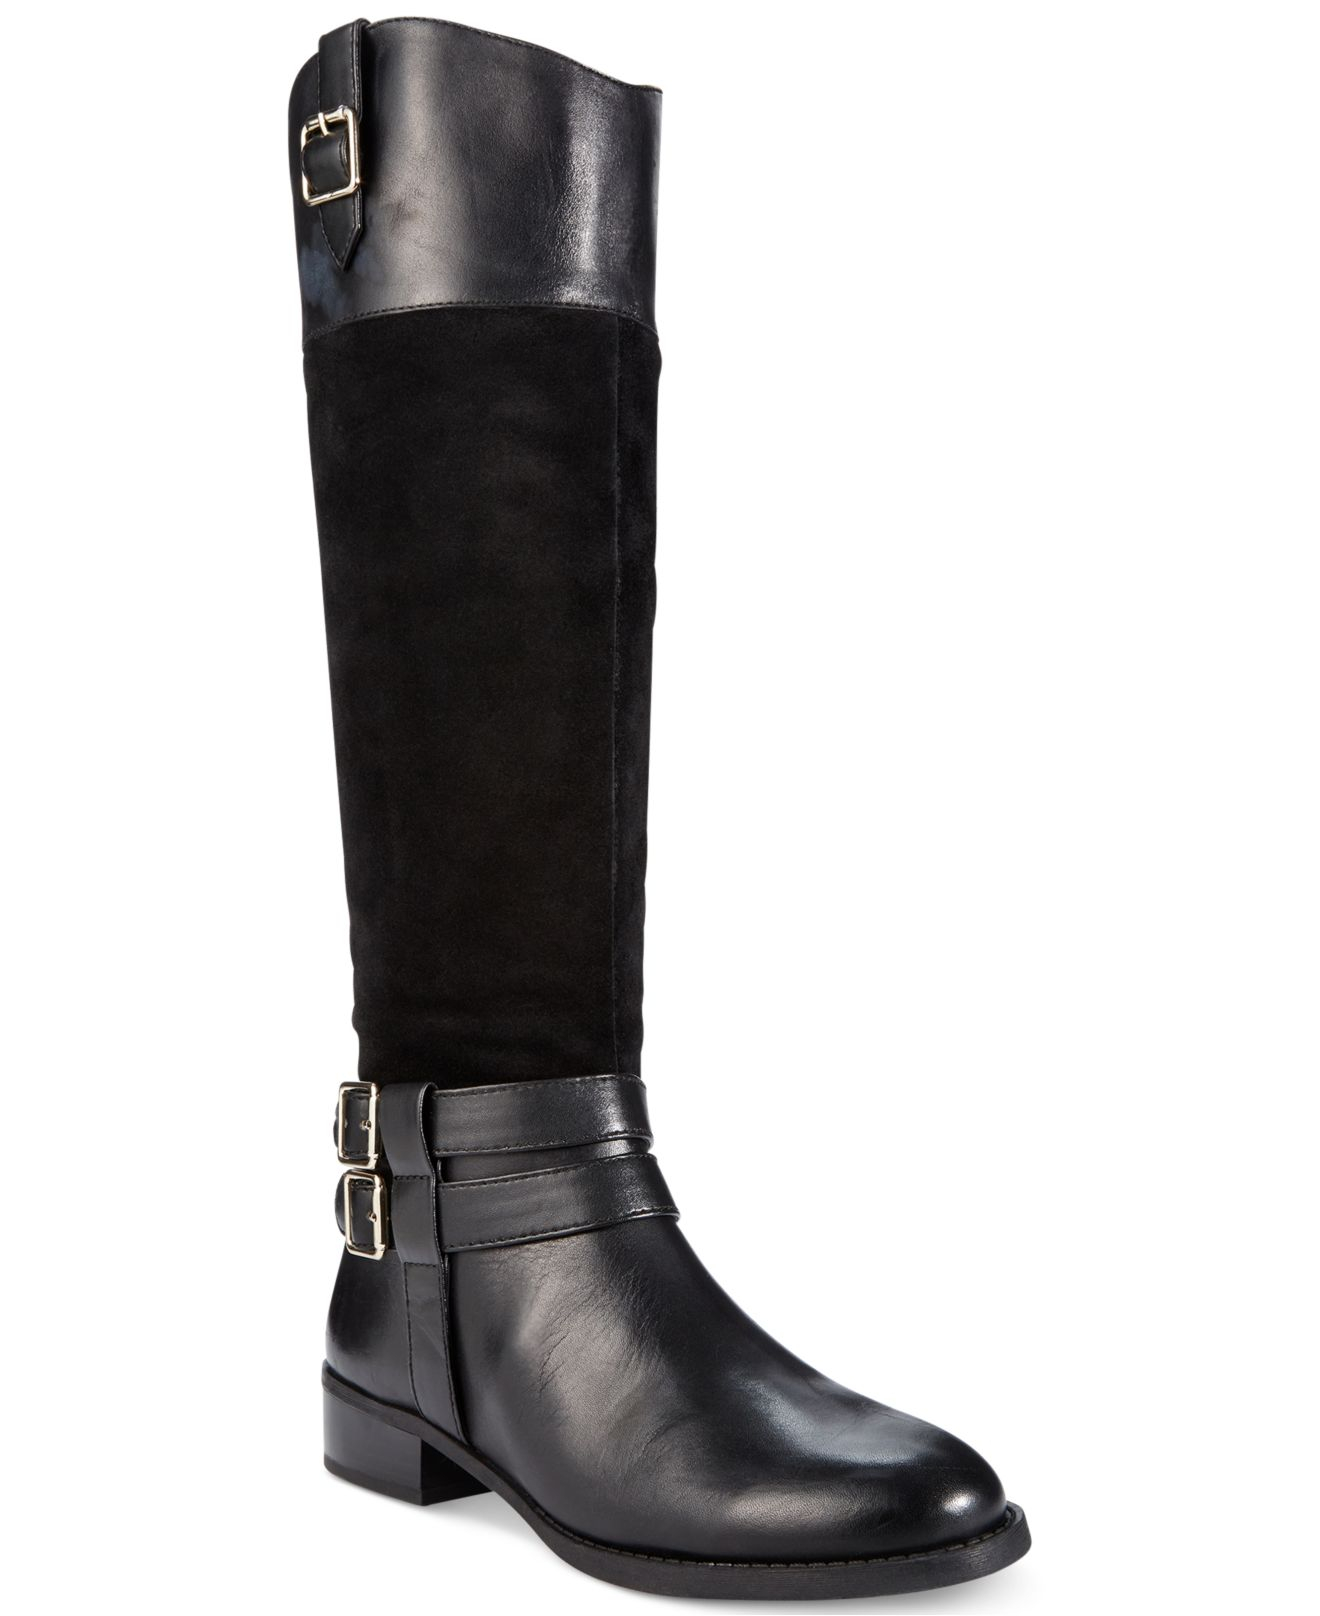 New Reneeze BERRY02 Womens Fashion KneeHigh Riding Boots  BLACK BERRY